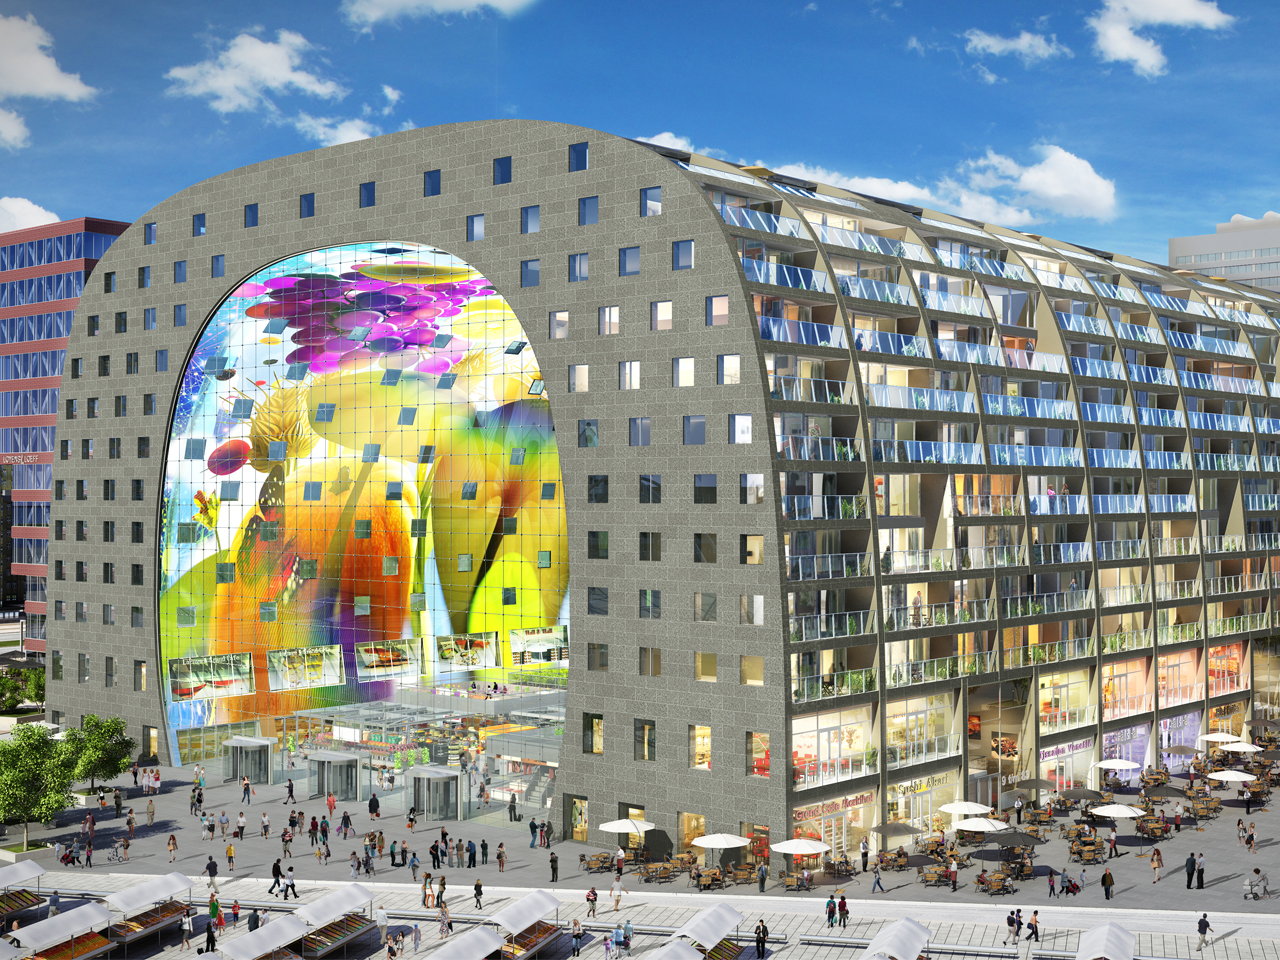 NYT names the Dutch Markthal as one of the 2014 Top Travel Destinations